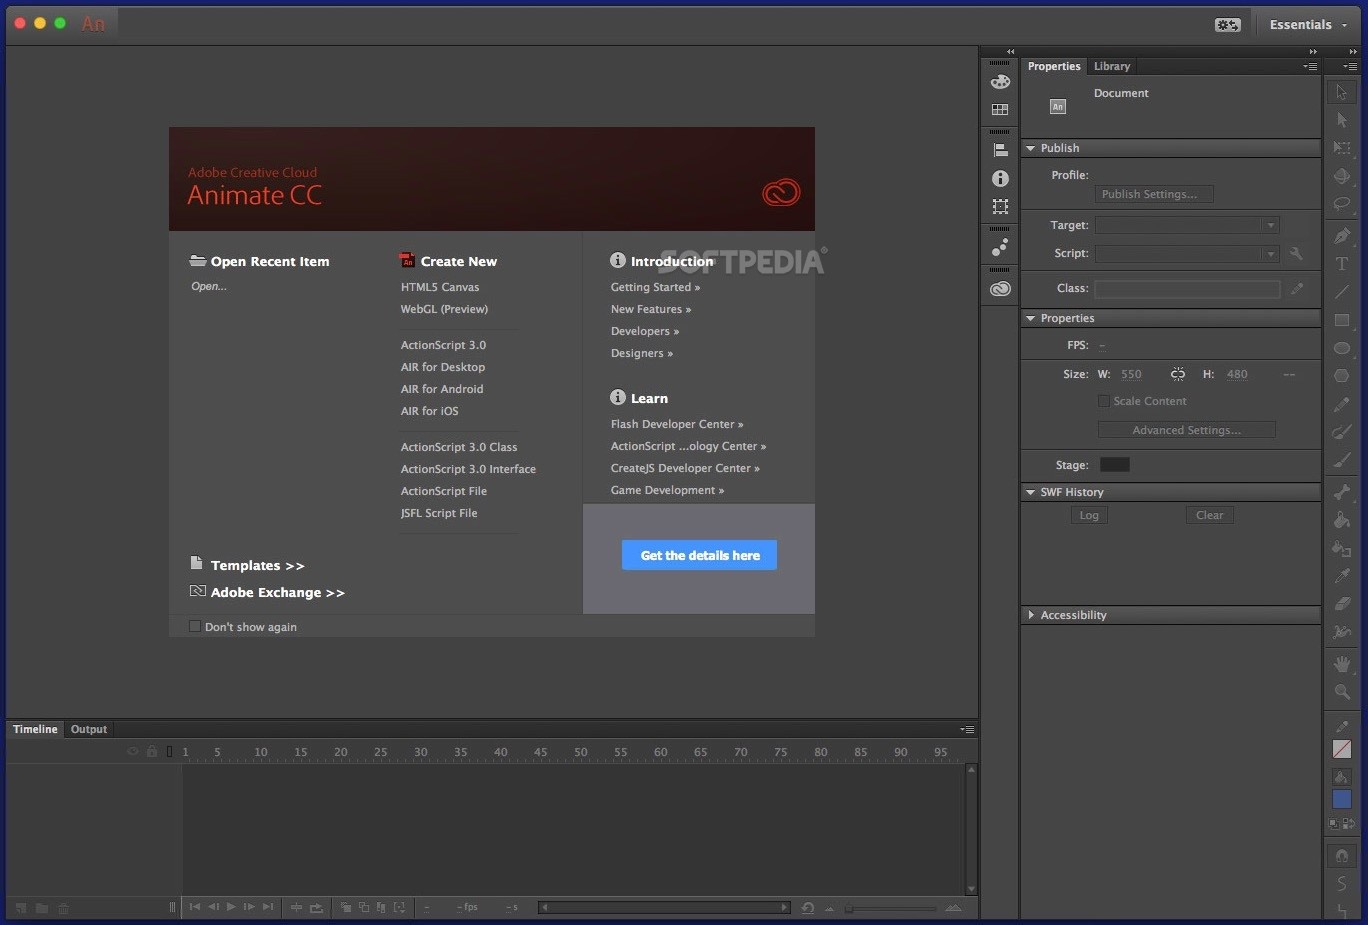 Adobe Animate Mac Cc 2018 19 2 1 Download